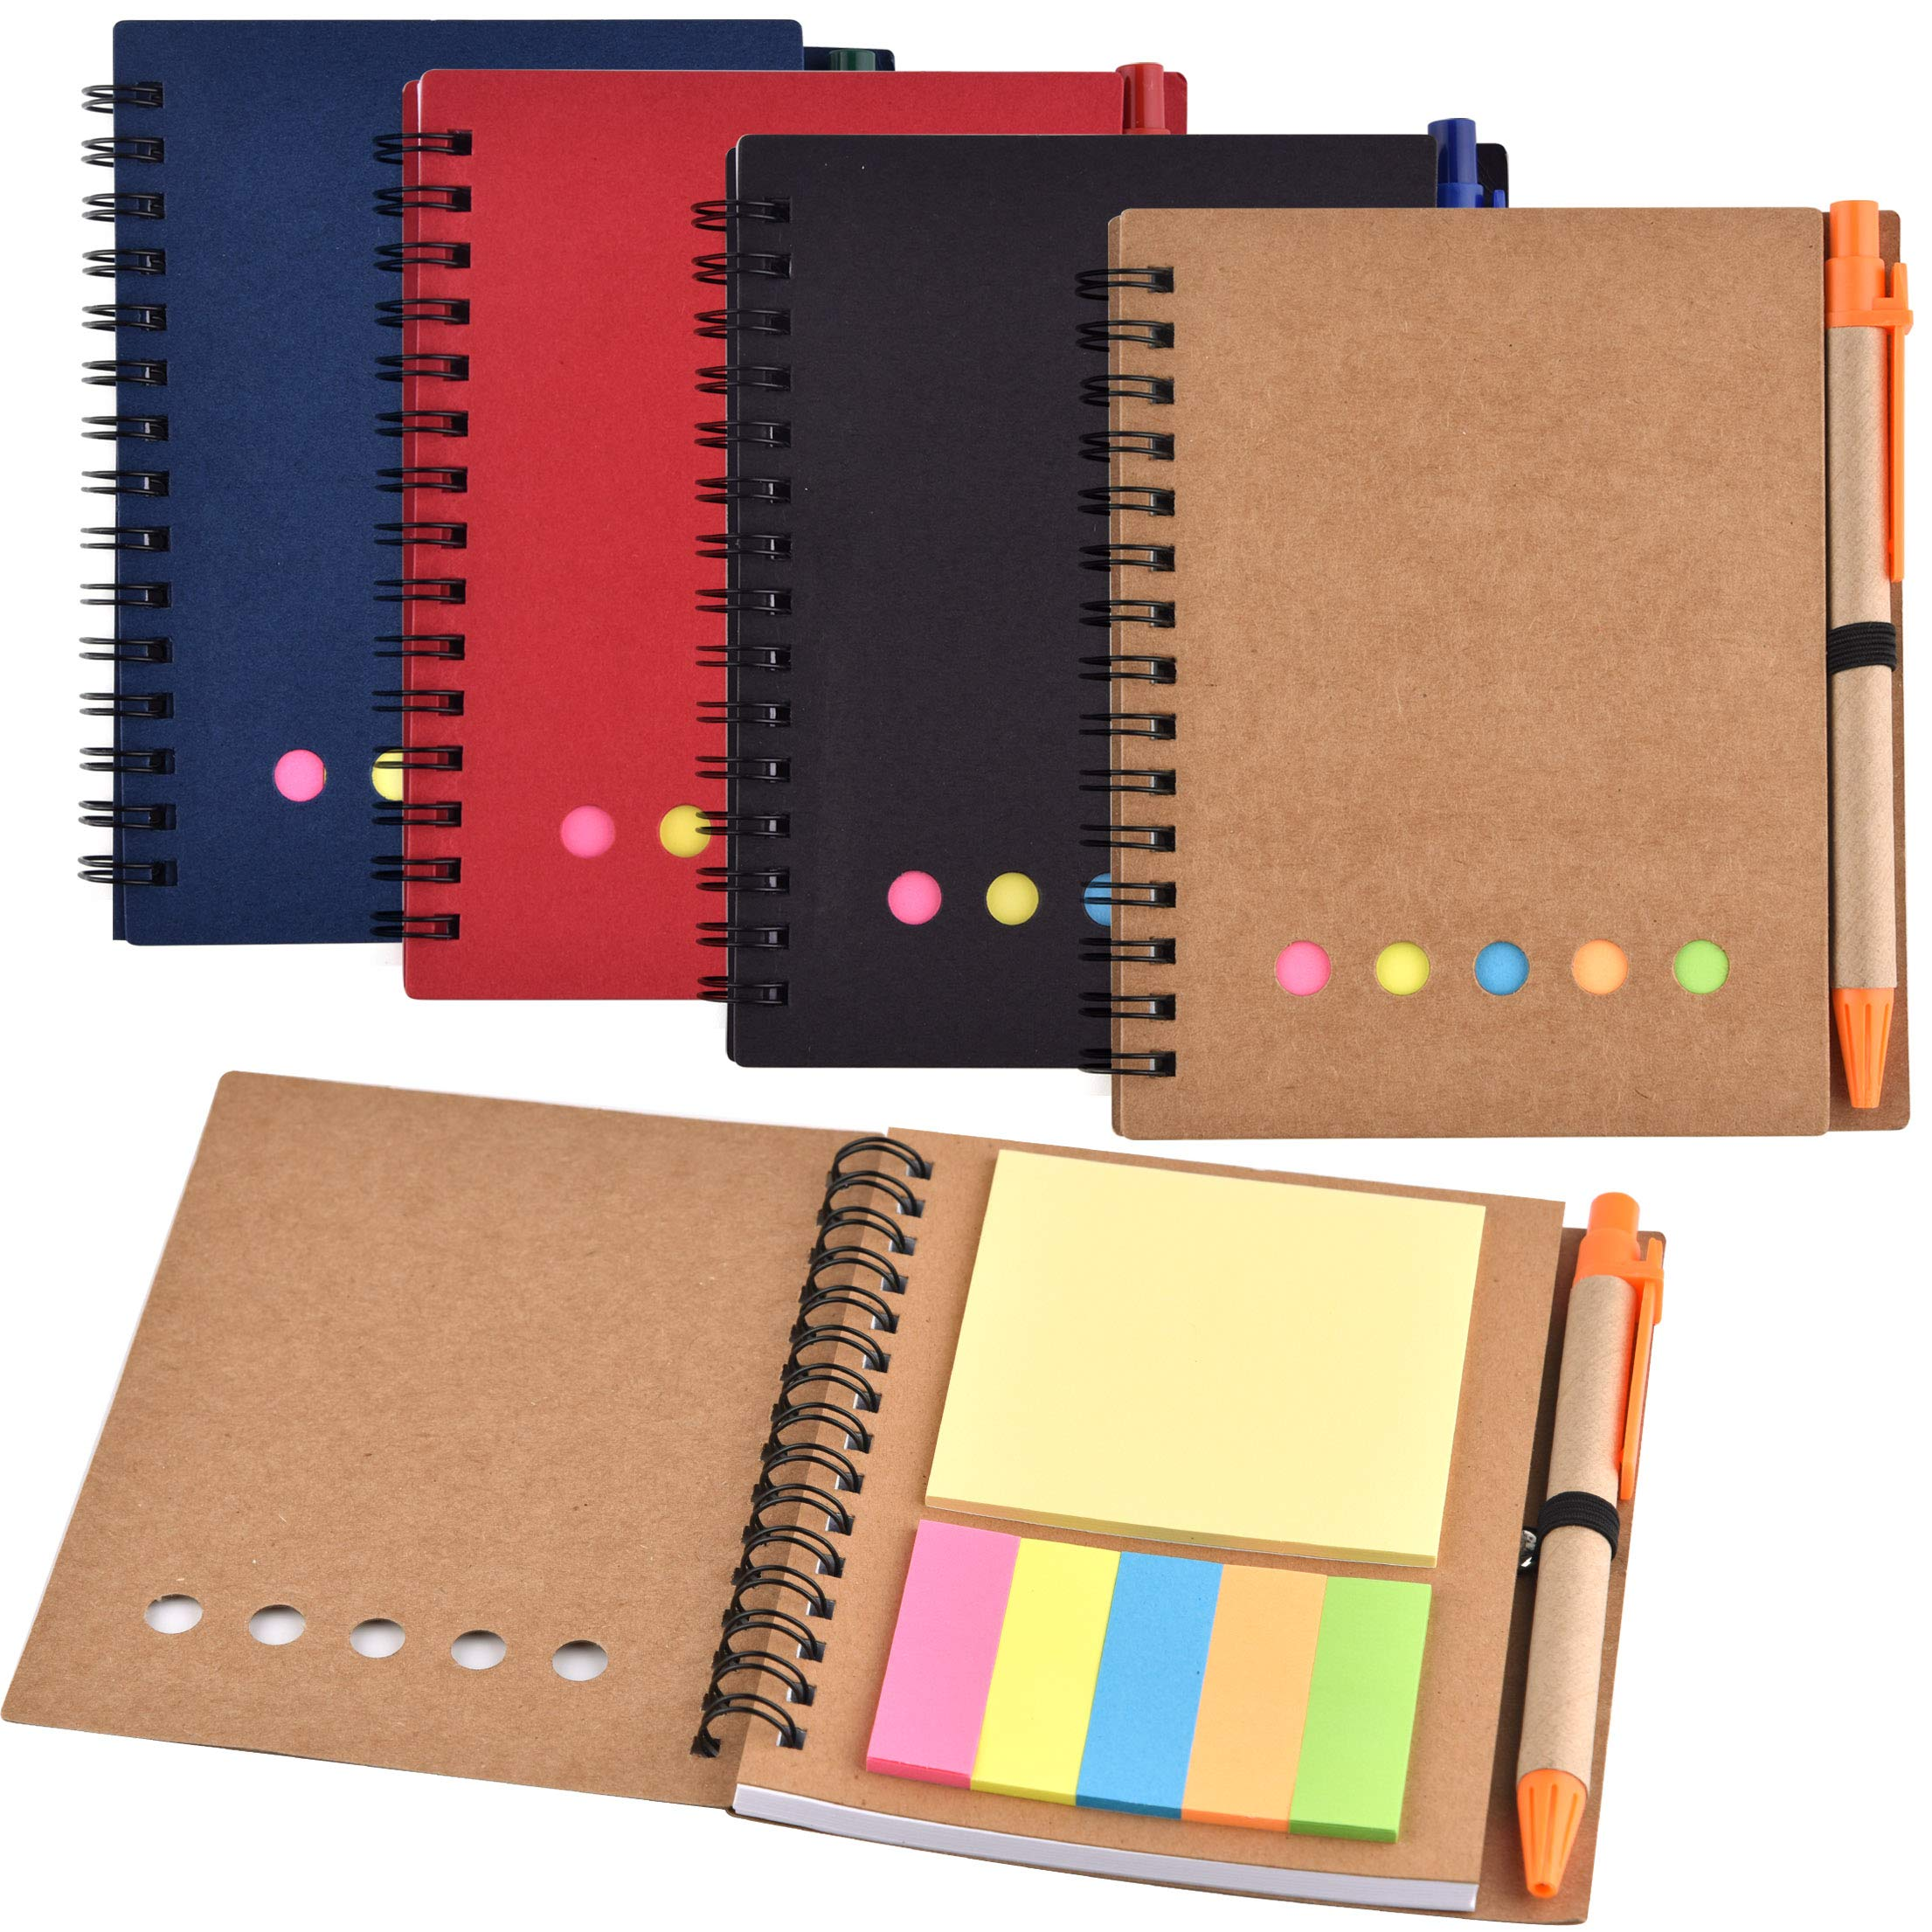 Coopay 4 Pack Spiral Notebook Lined Notepad with Pen in Holder and Sticky Notes, Page Marker Index Tabs Flags (Black, Blue, Red, Brown